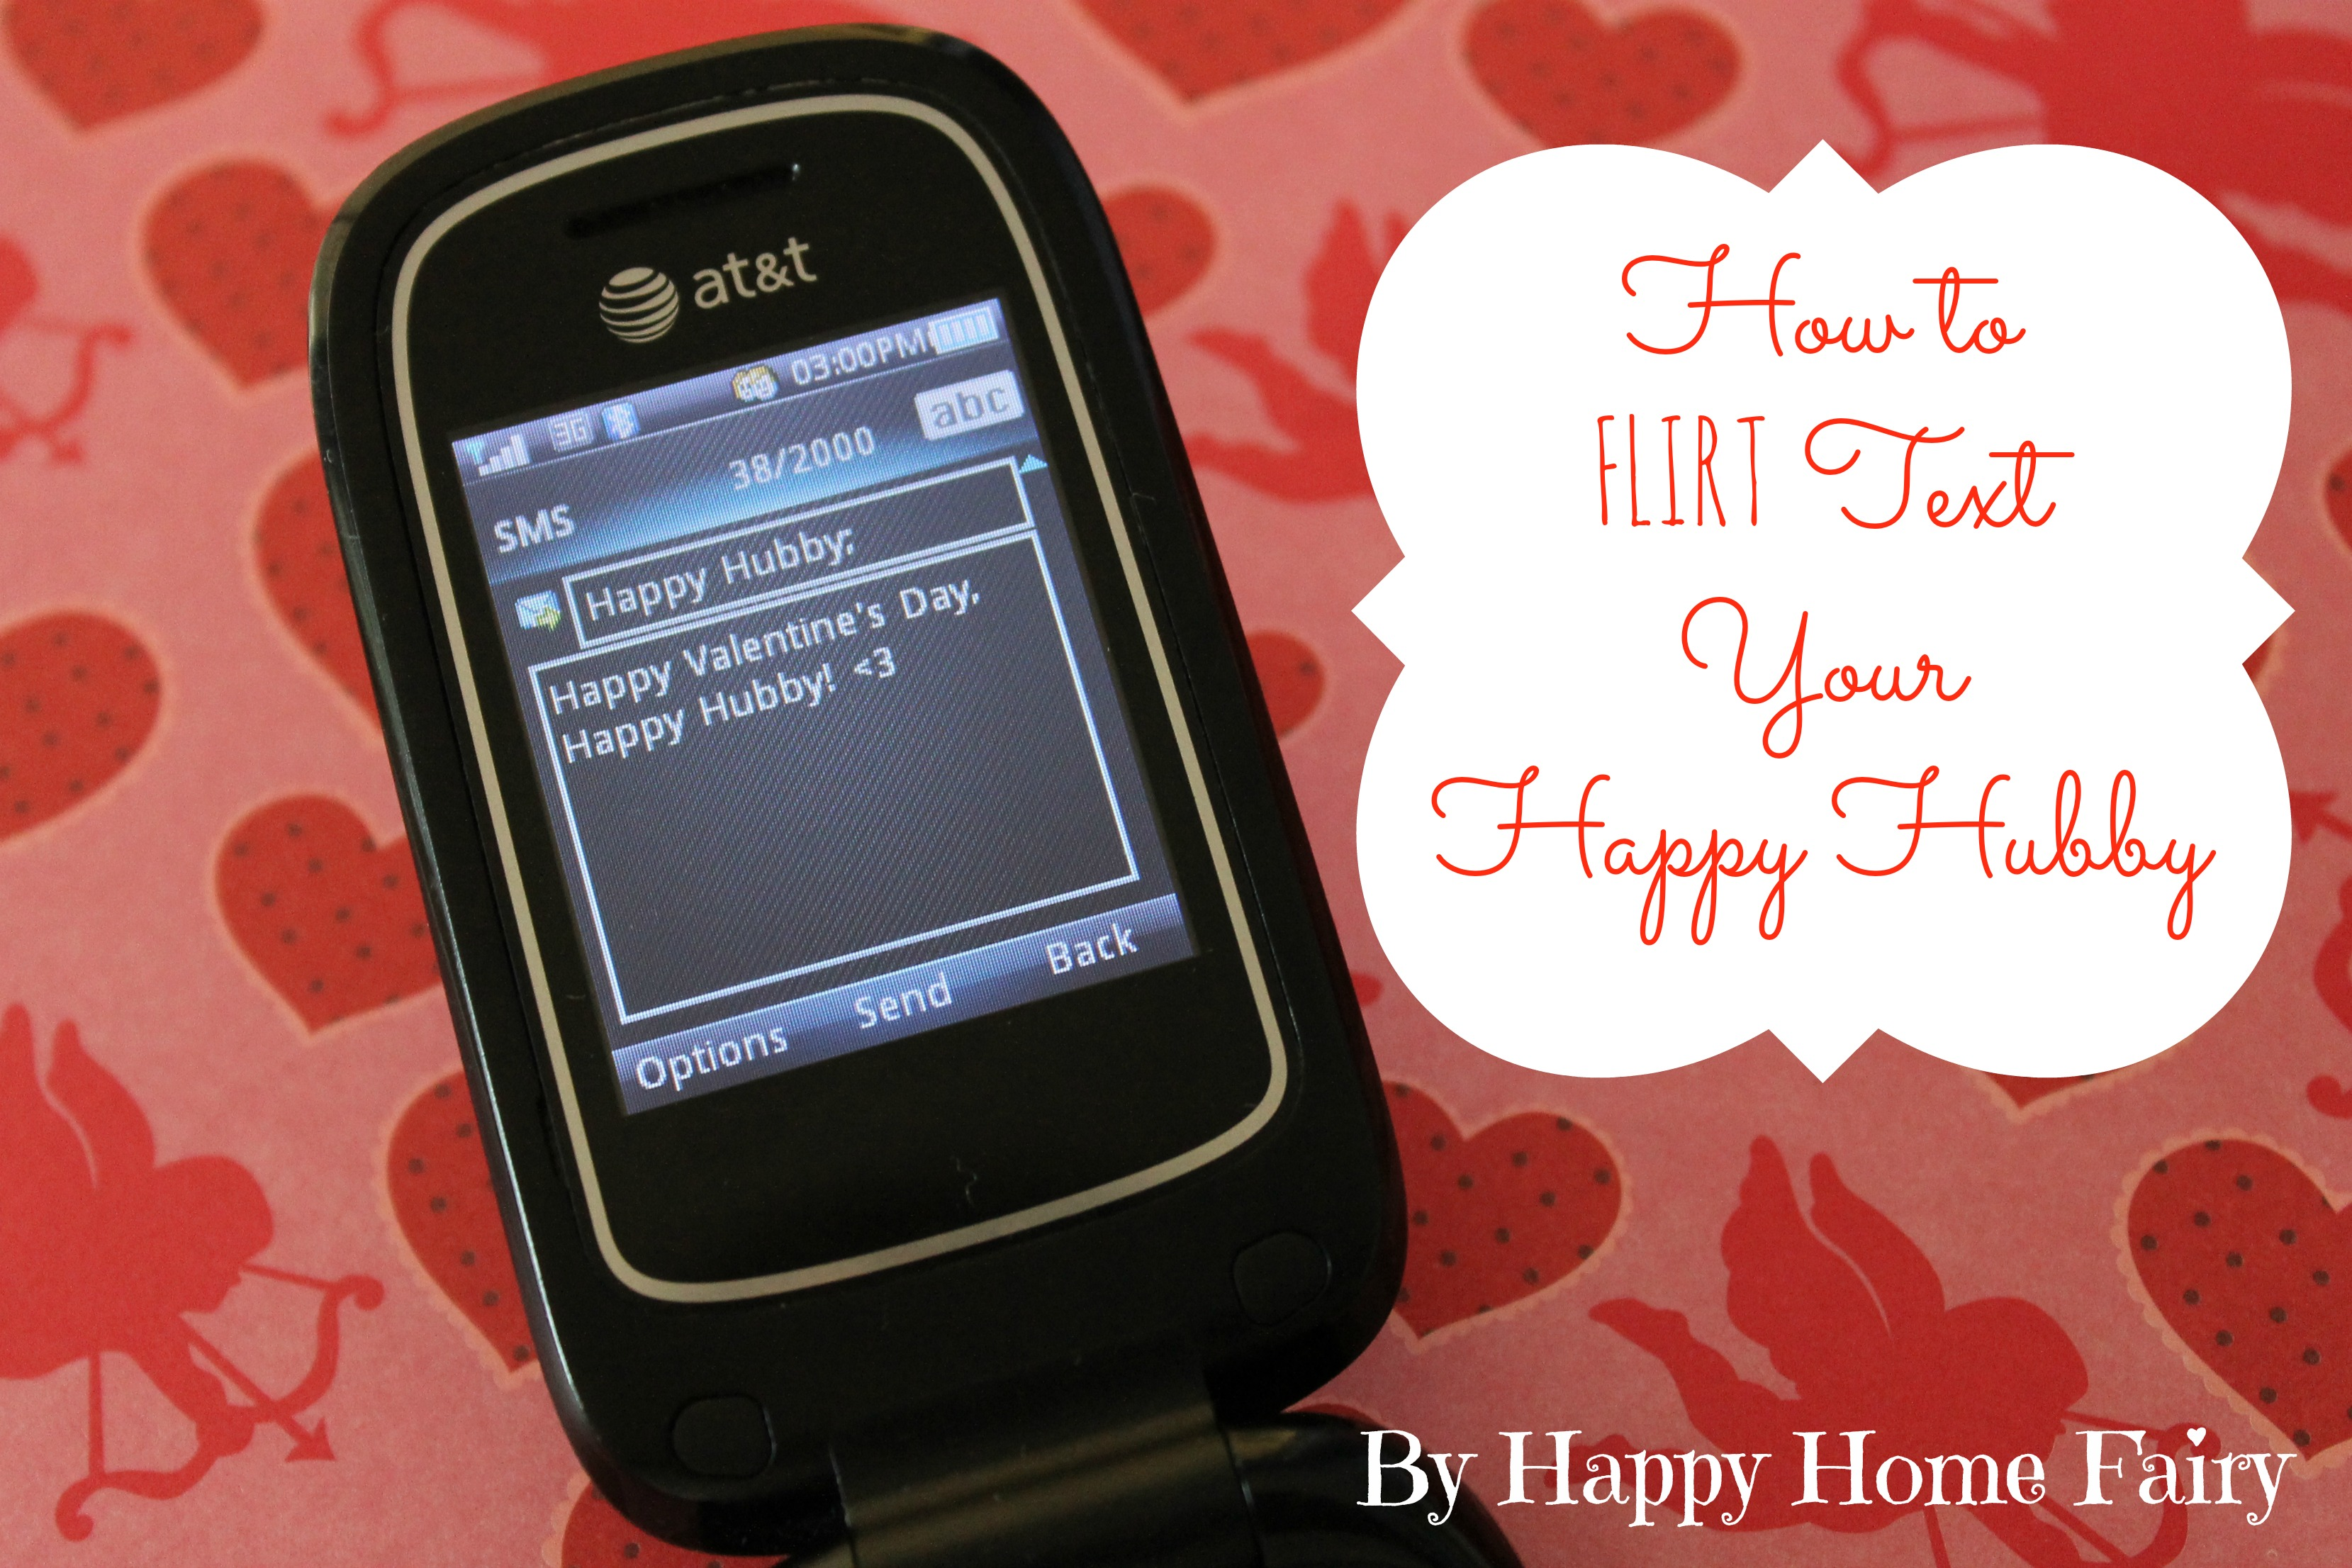 How To Flirt Text Your Happy Hubby Happy Home Fairy